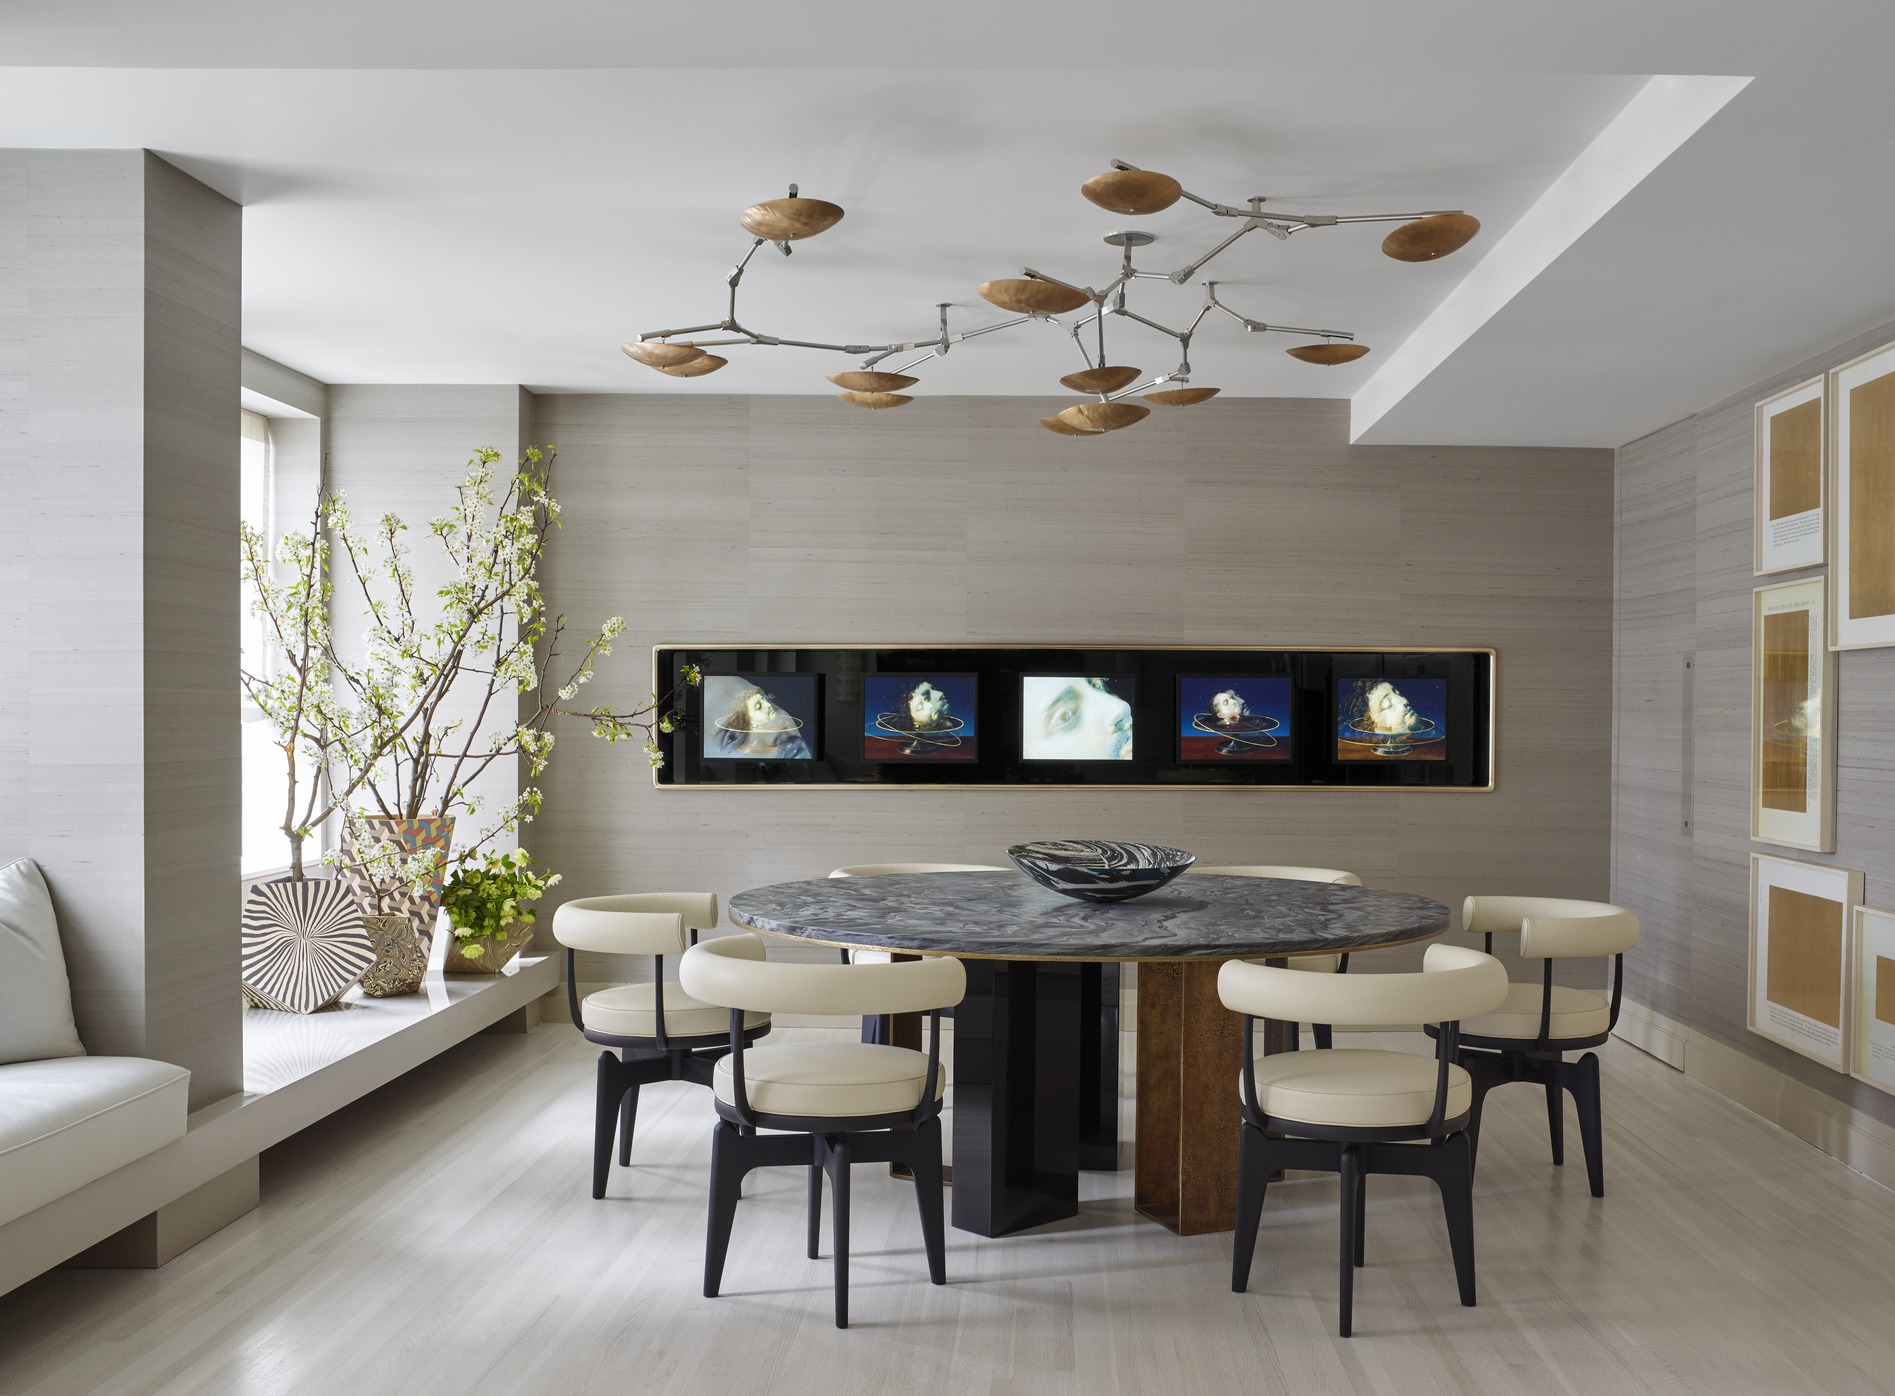 Unusual Ceiling Lamp Decorating Futuristic Dining Room Ideas With Round Marble Top Table And Modern Chairs